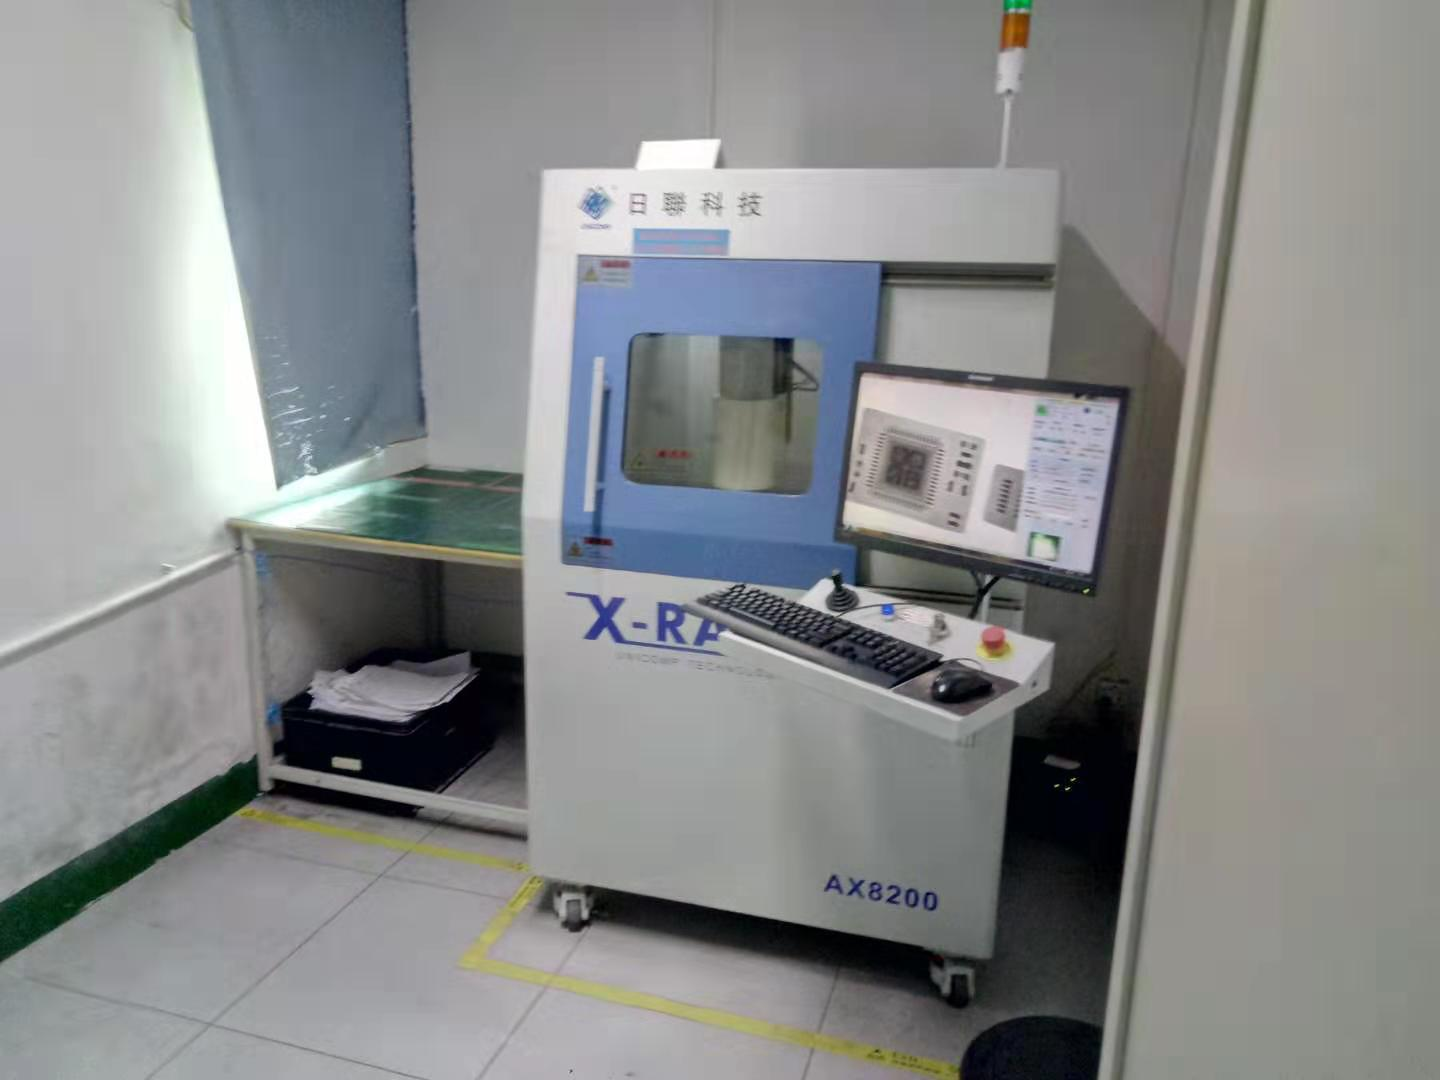 X-Ray test